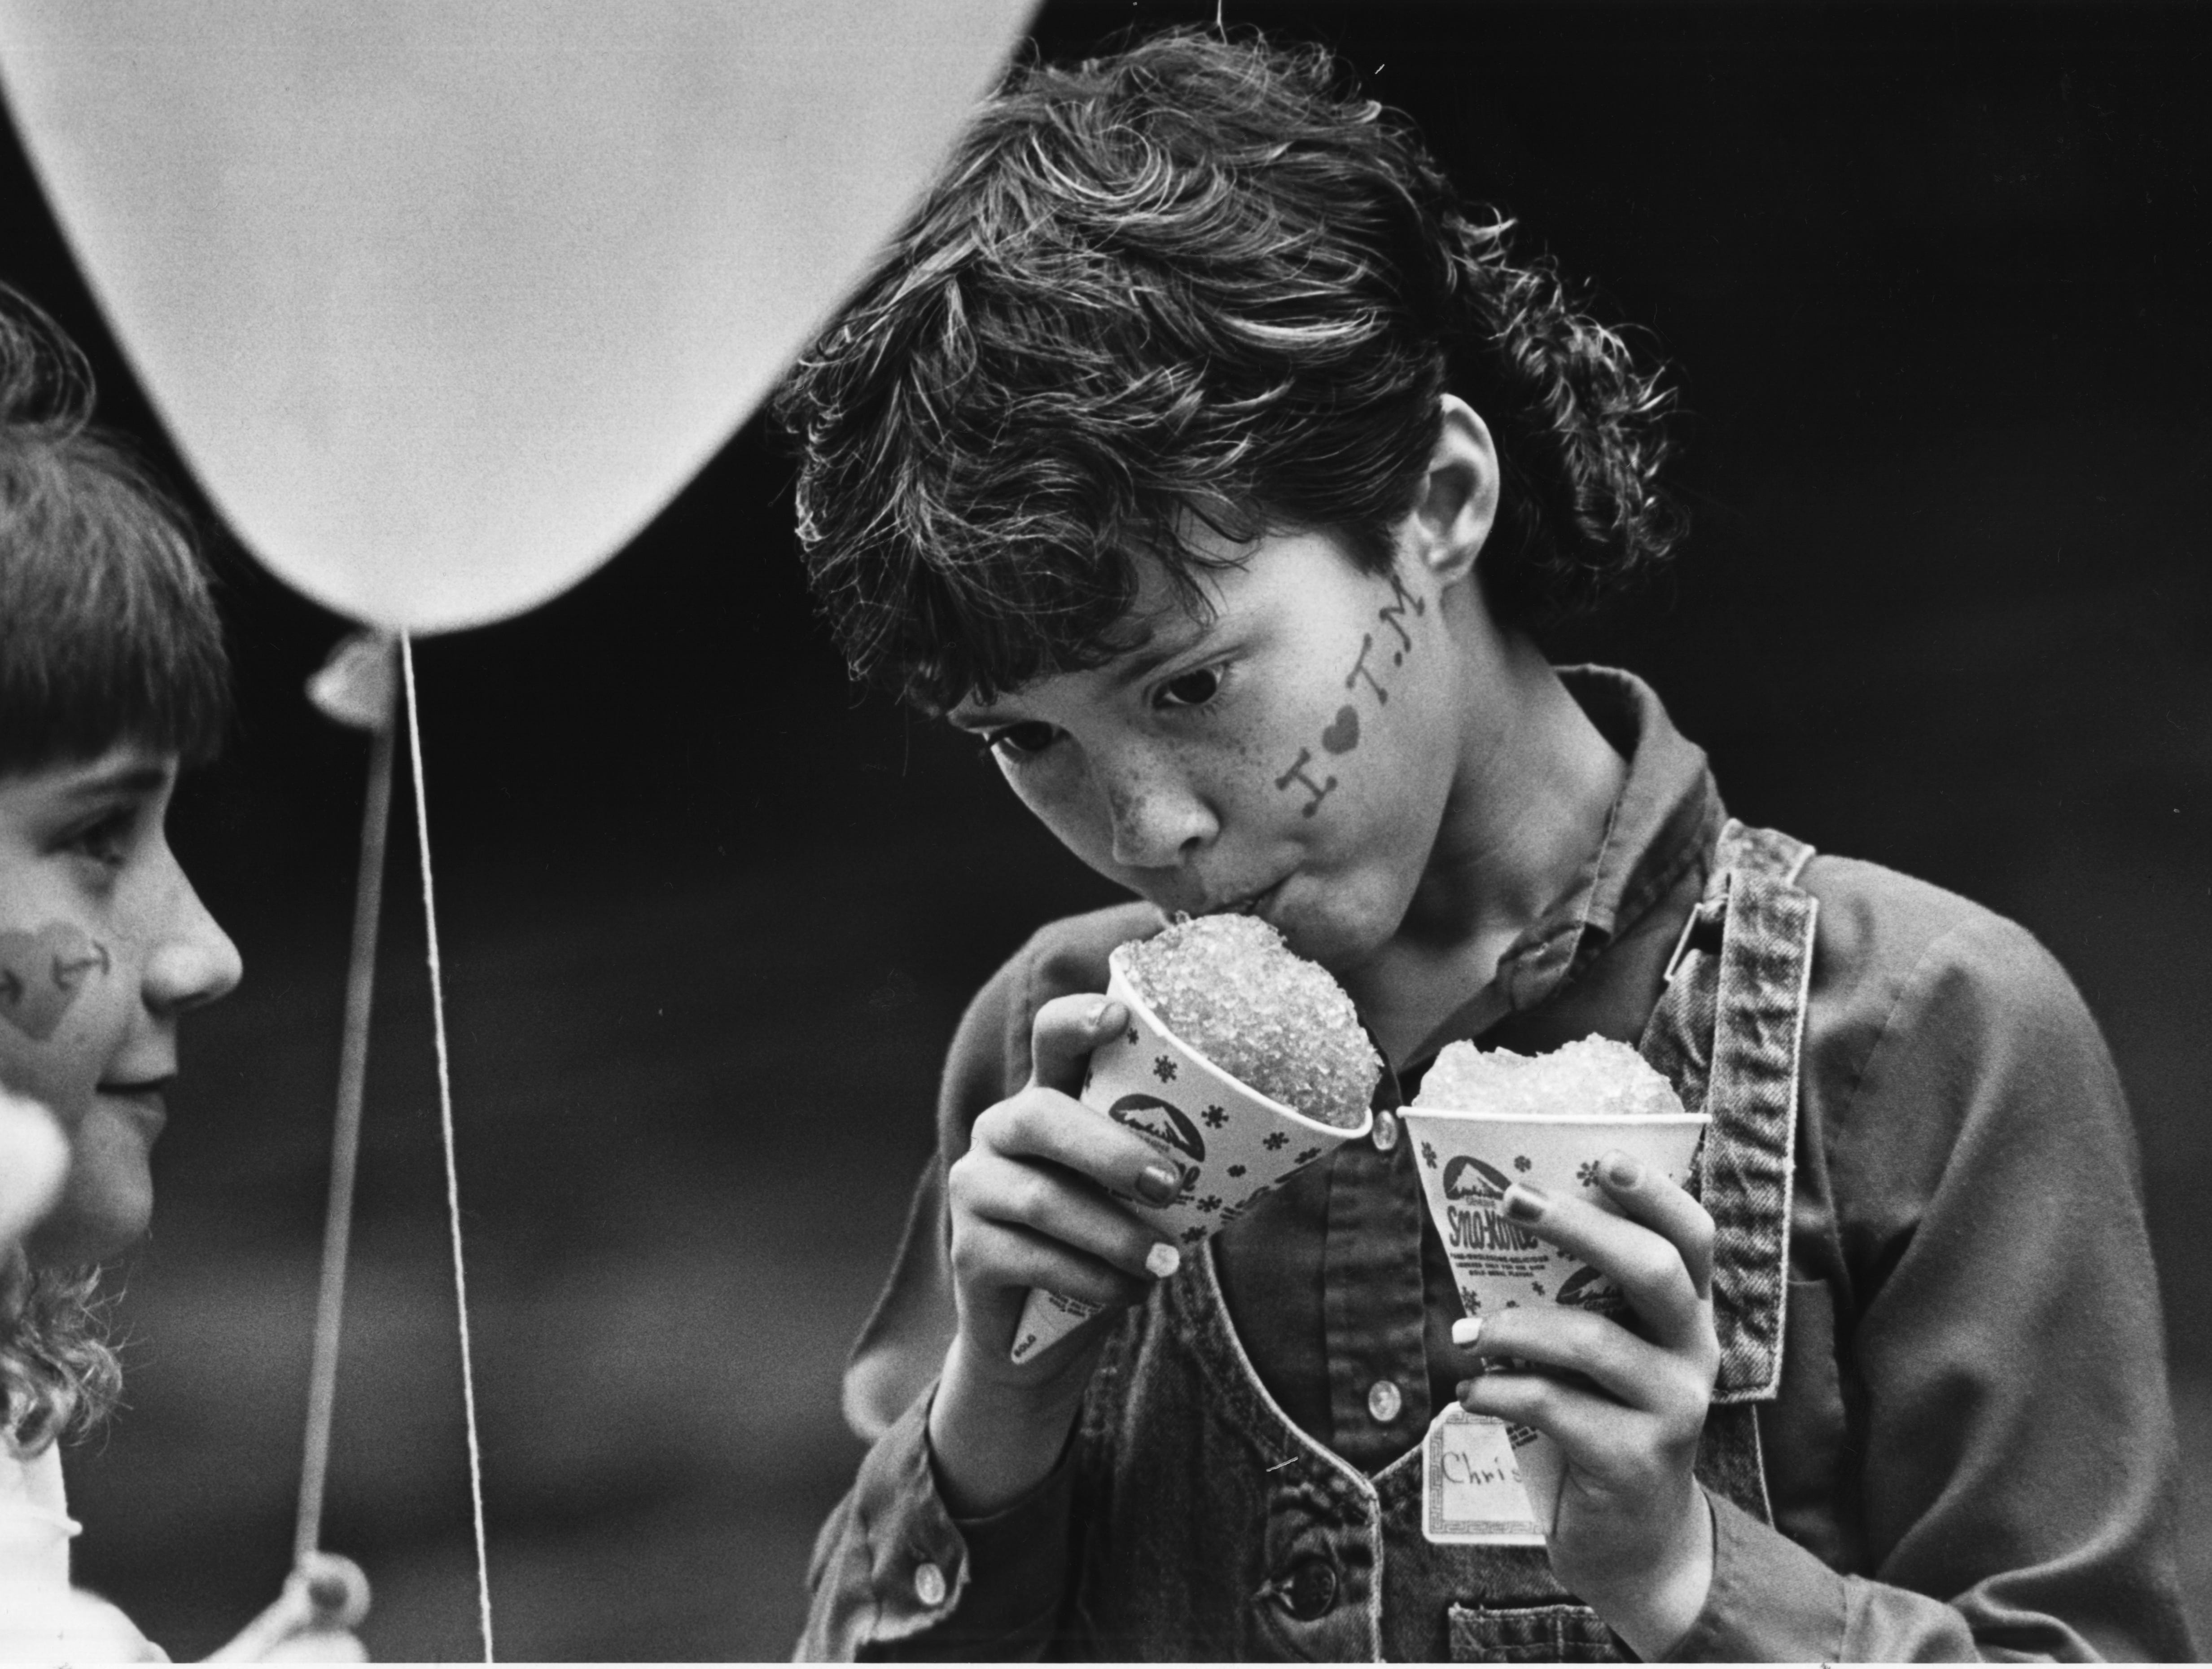 Christie Smith, 9, found the snow cones doubly delicious April 15, 1987 during the Dogwood Arts Festival at Market Square. She was visiting the festival with her Rogersville City School fourth-grade classmates.